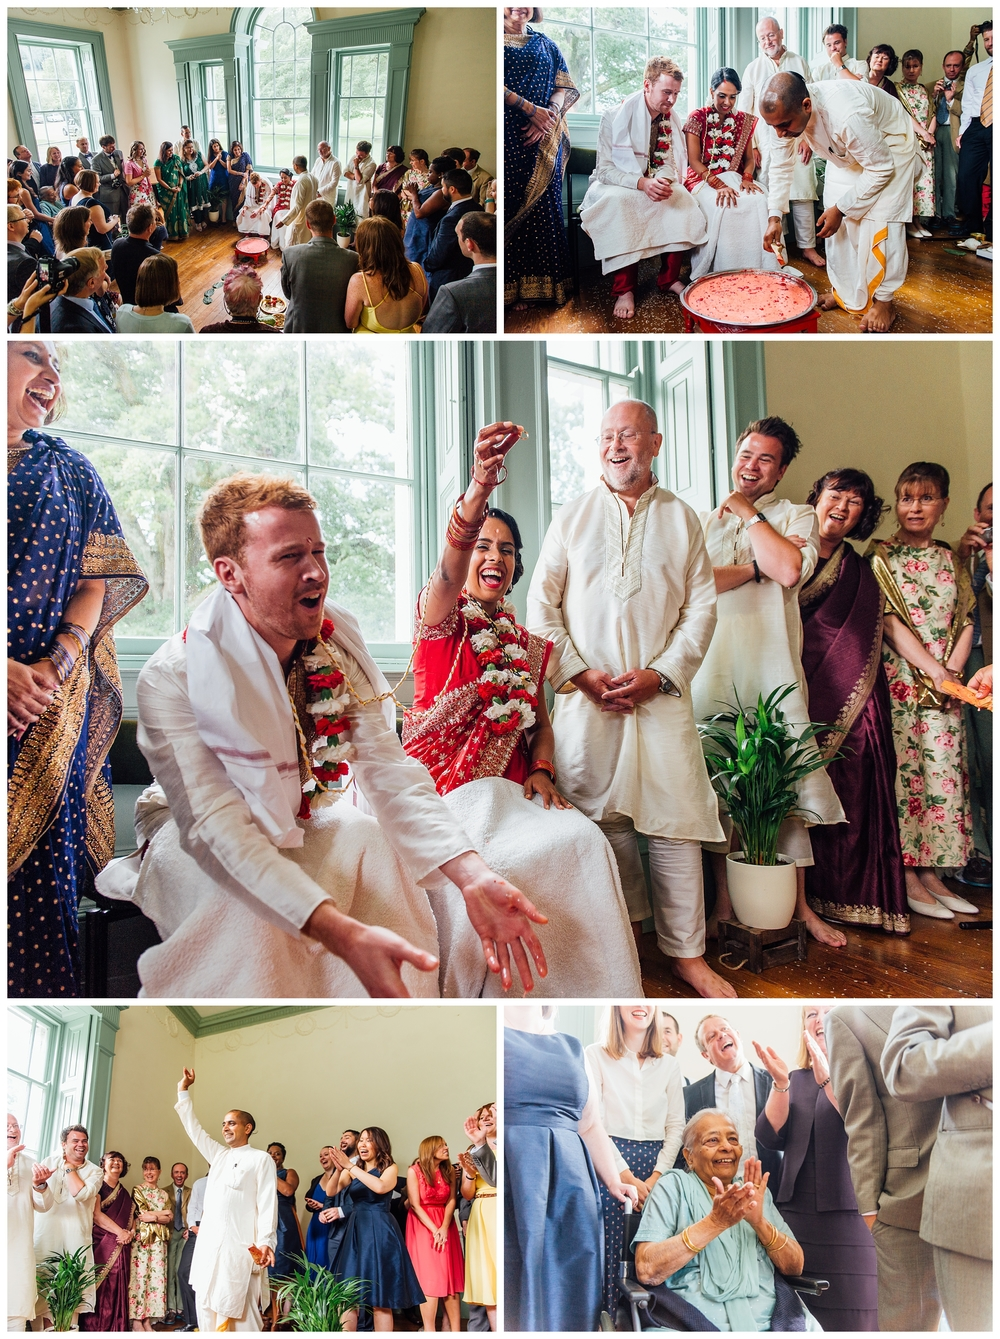 Rich&Dhikshana_Lupton_House_Devon_Hindu_English_Fushion_Wedding_0012.jpg